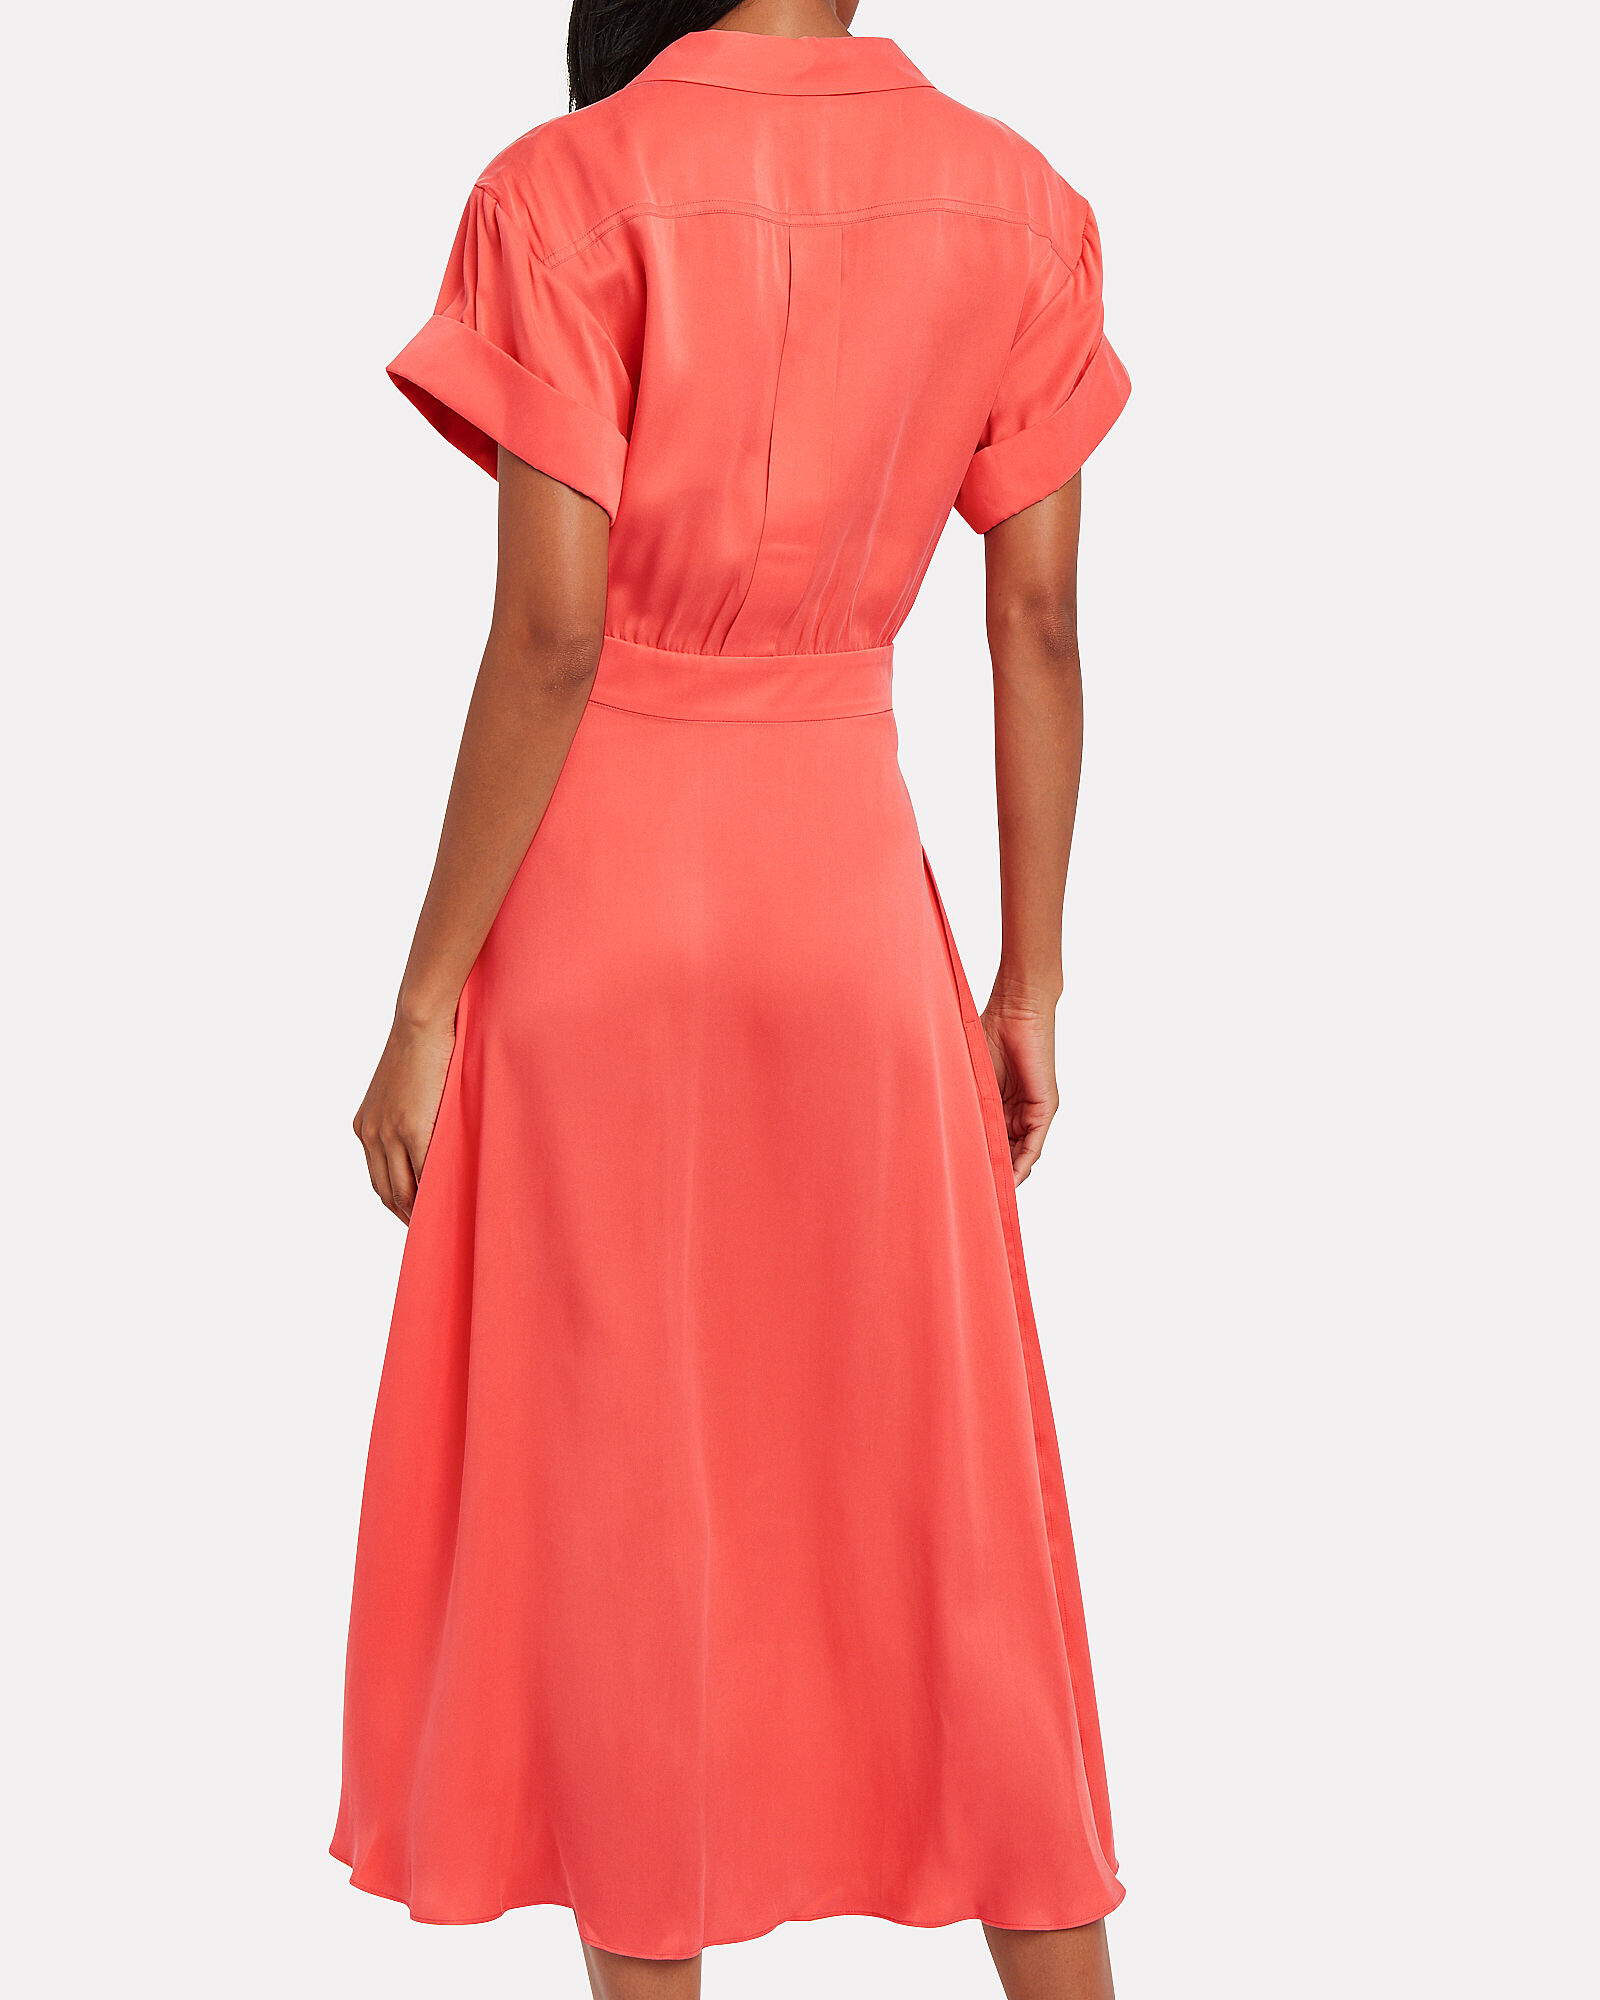 Orlenna Button Front Dress, CORAL, hi-res